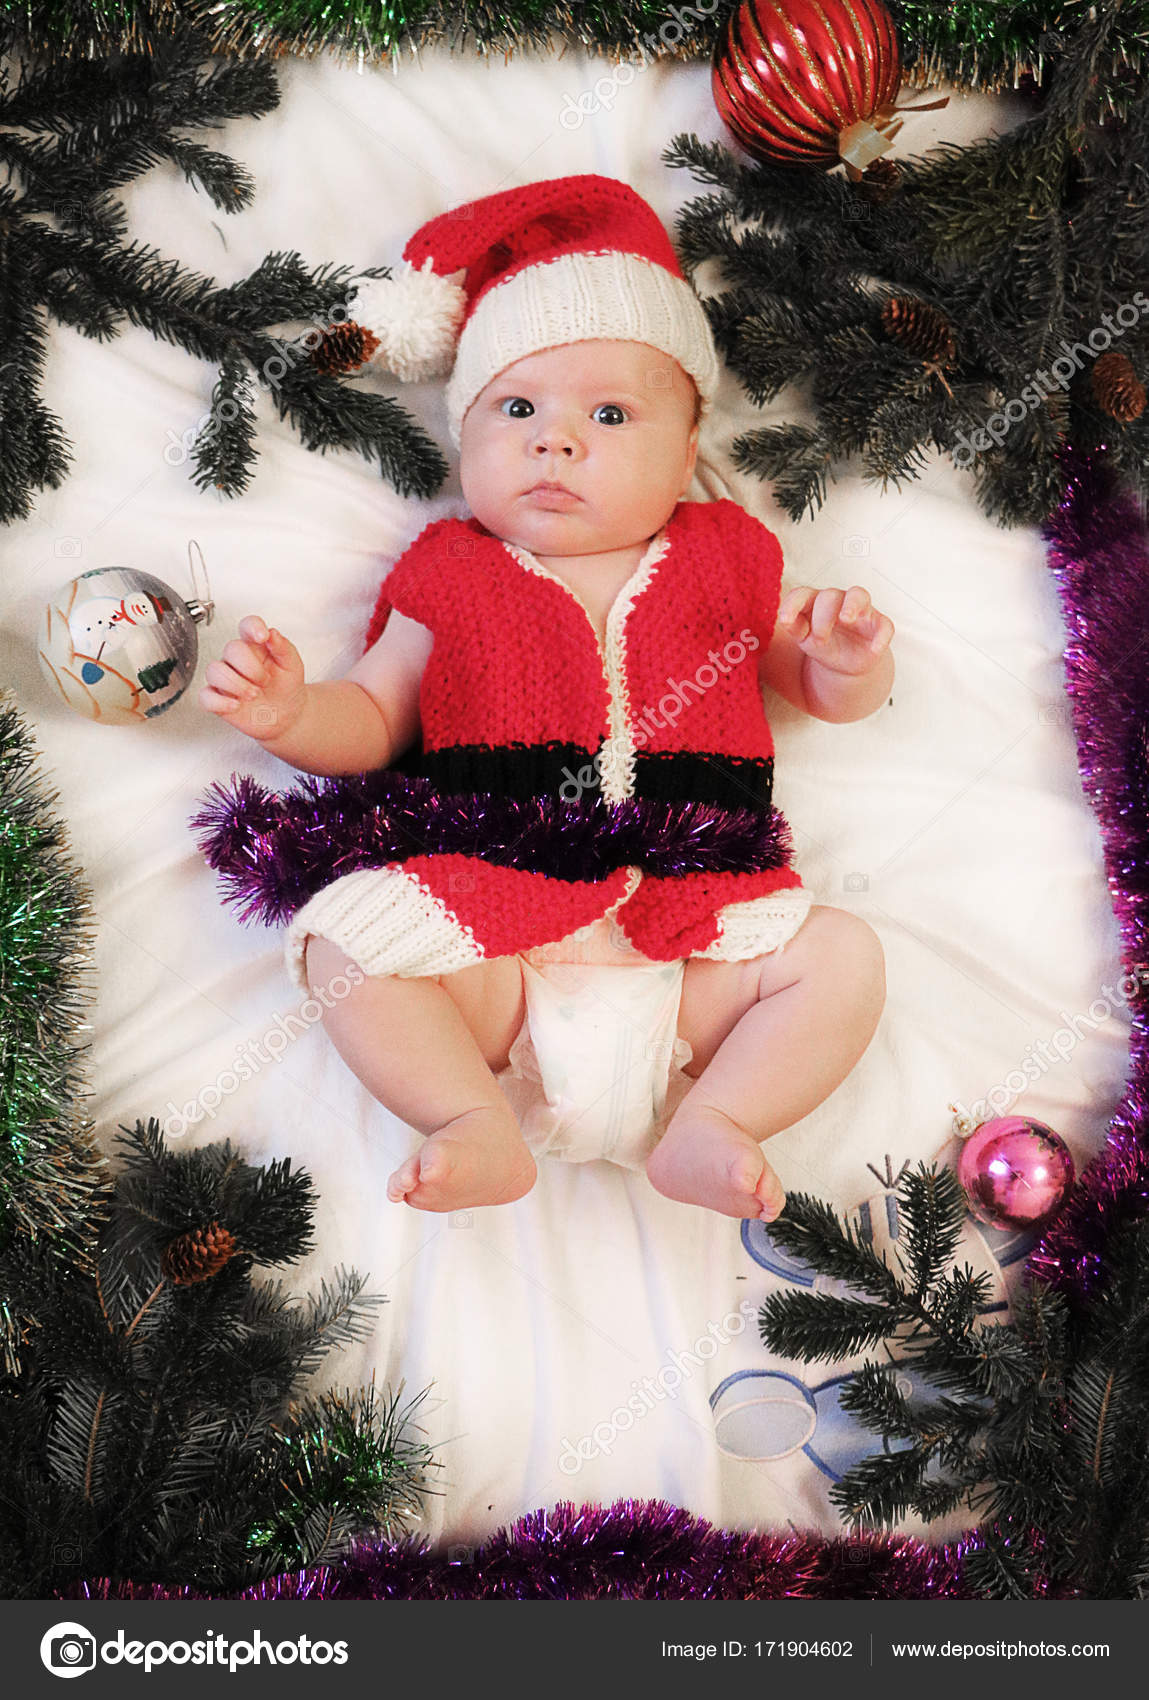 66818f8b2c458 Baby first christmas. Beautiful little baby in Santa hat and jacket  celebrates Christmas. New Year s holidays. Baby with santa hat inside  tinsel